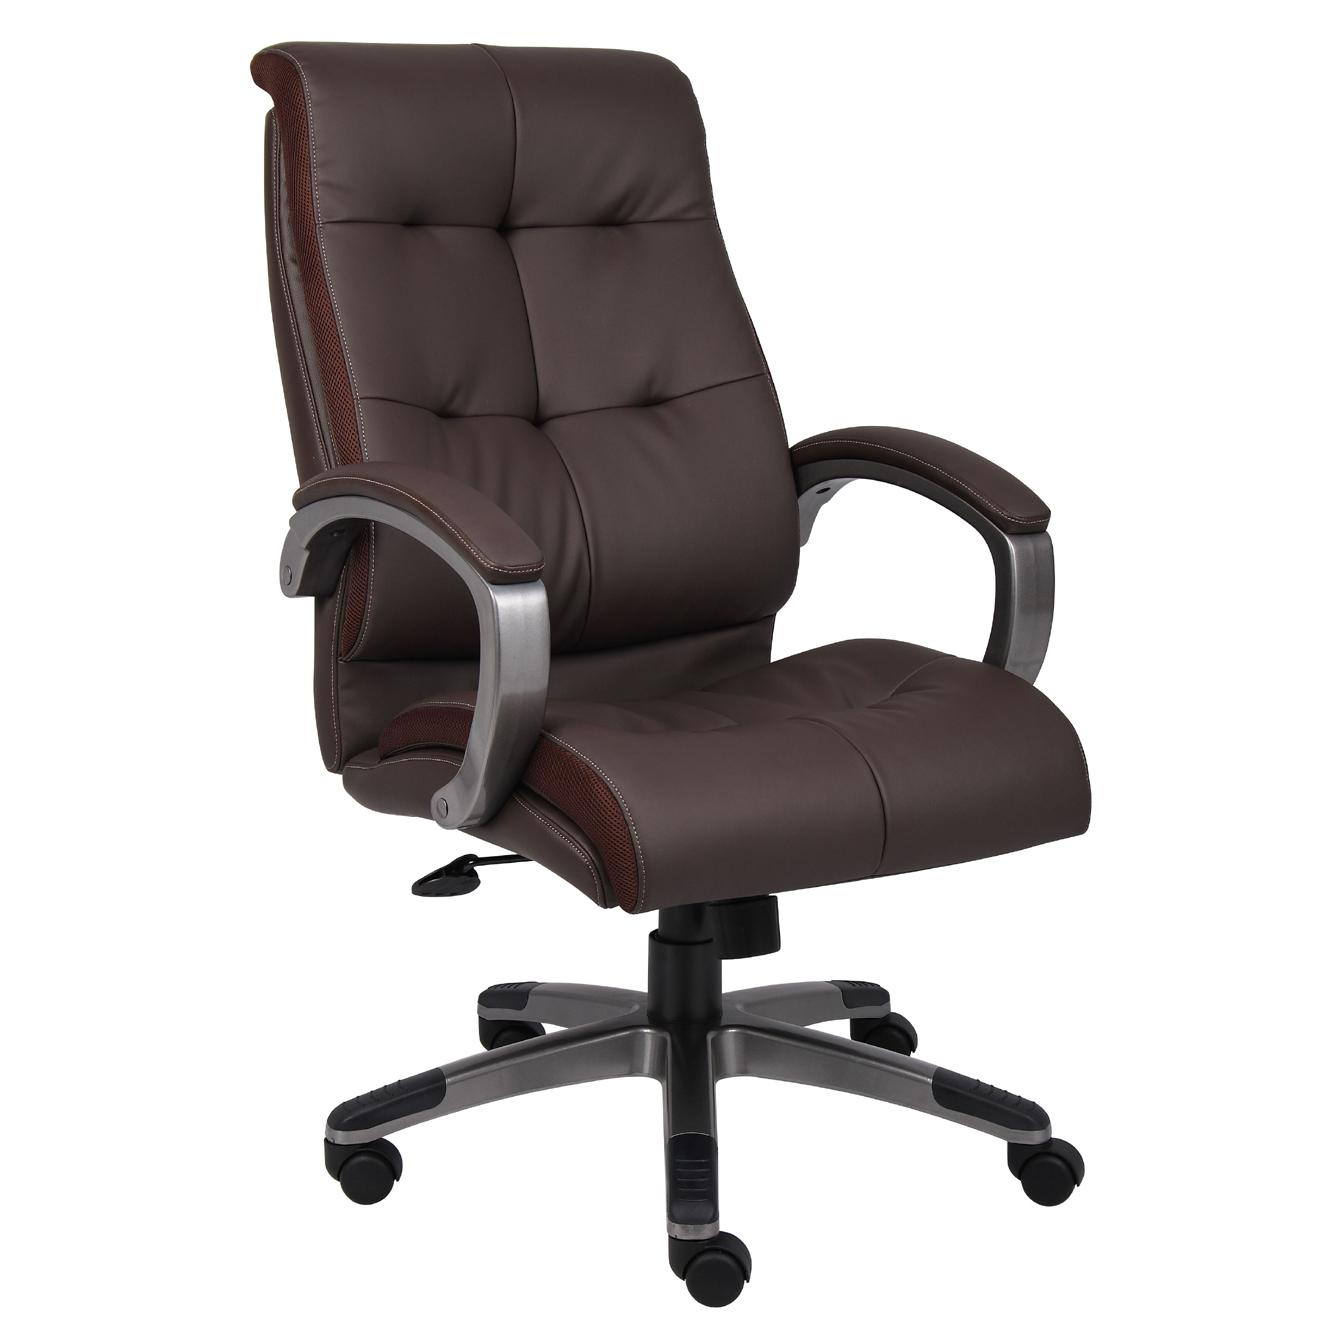 Most Comfortable Desk Chair Most Comfortable Executive Office Chair Home Furniture